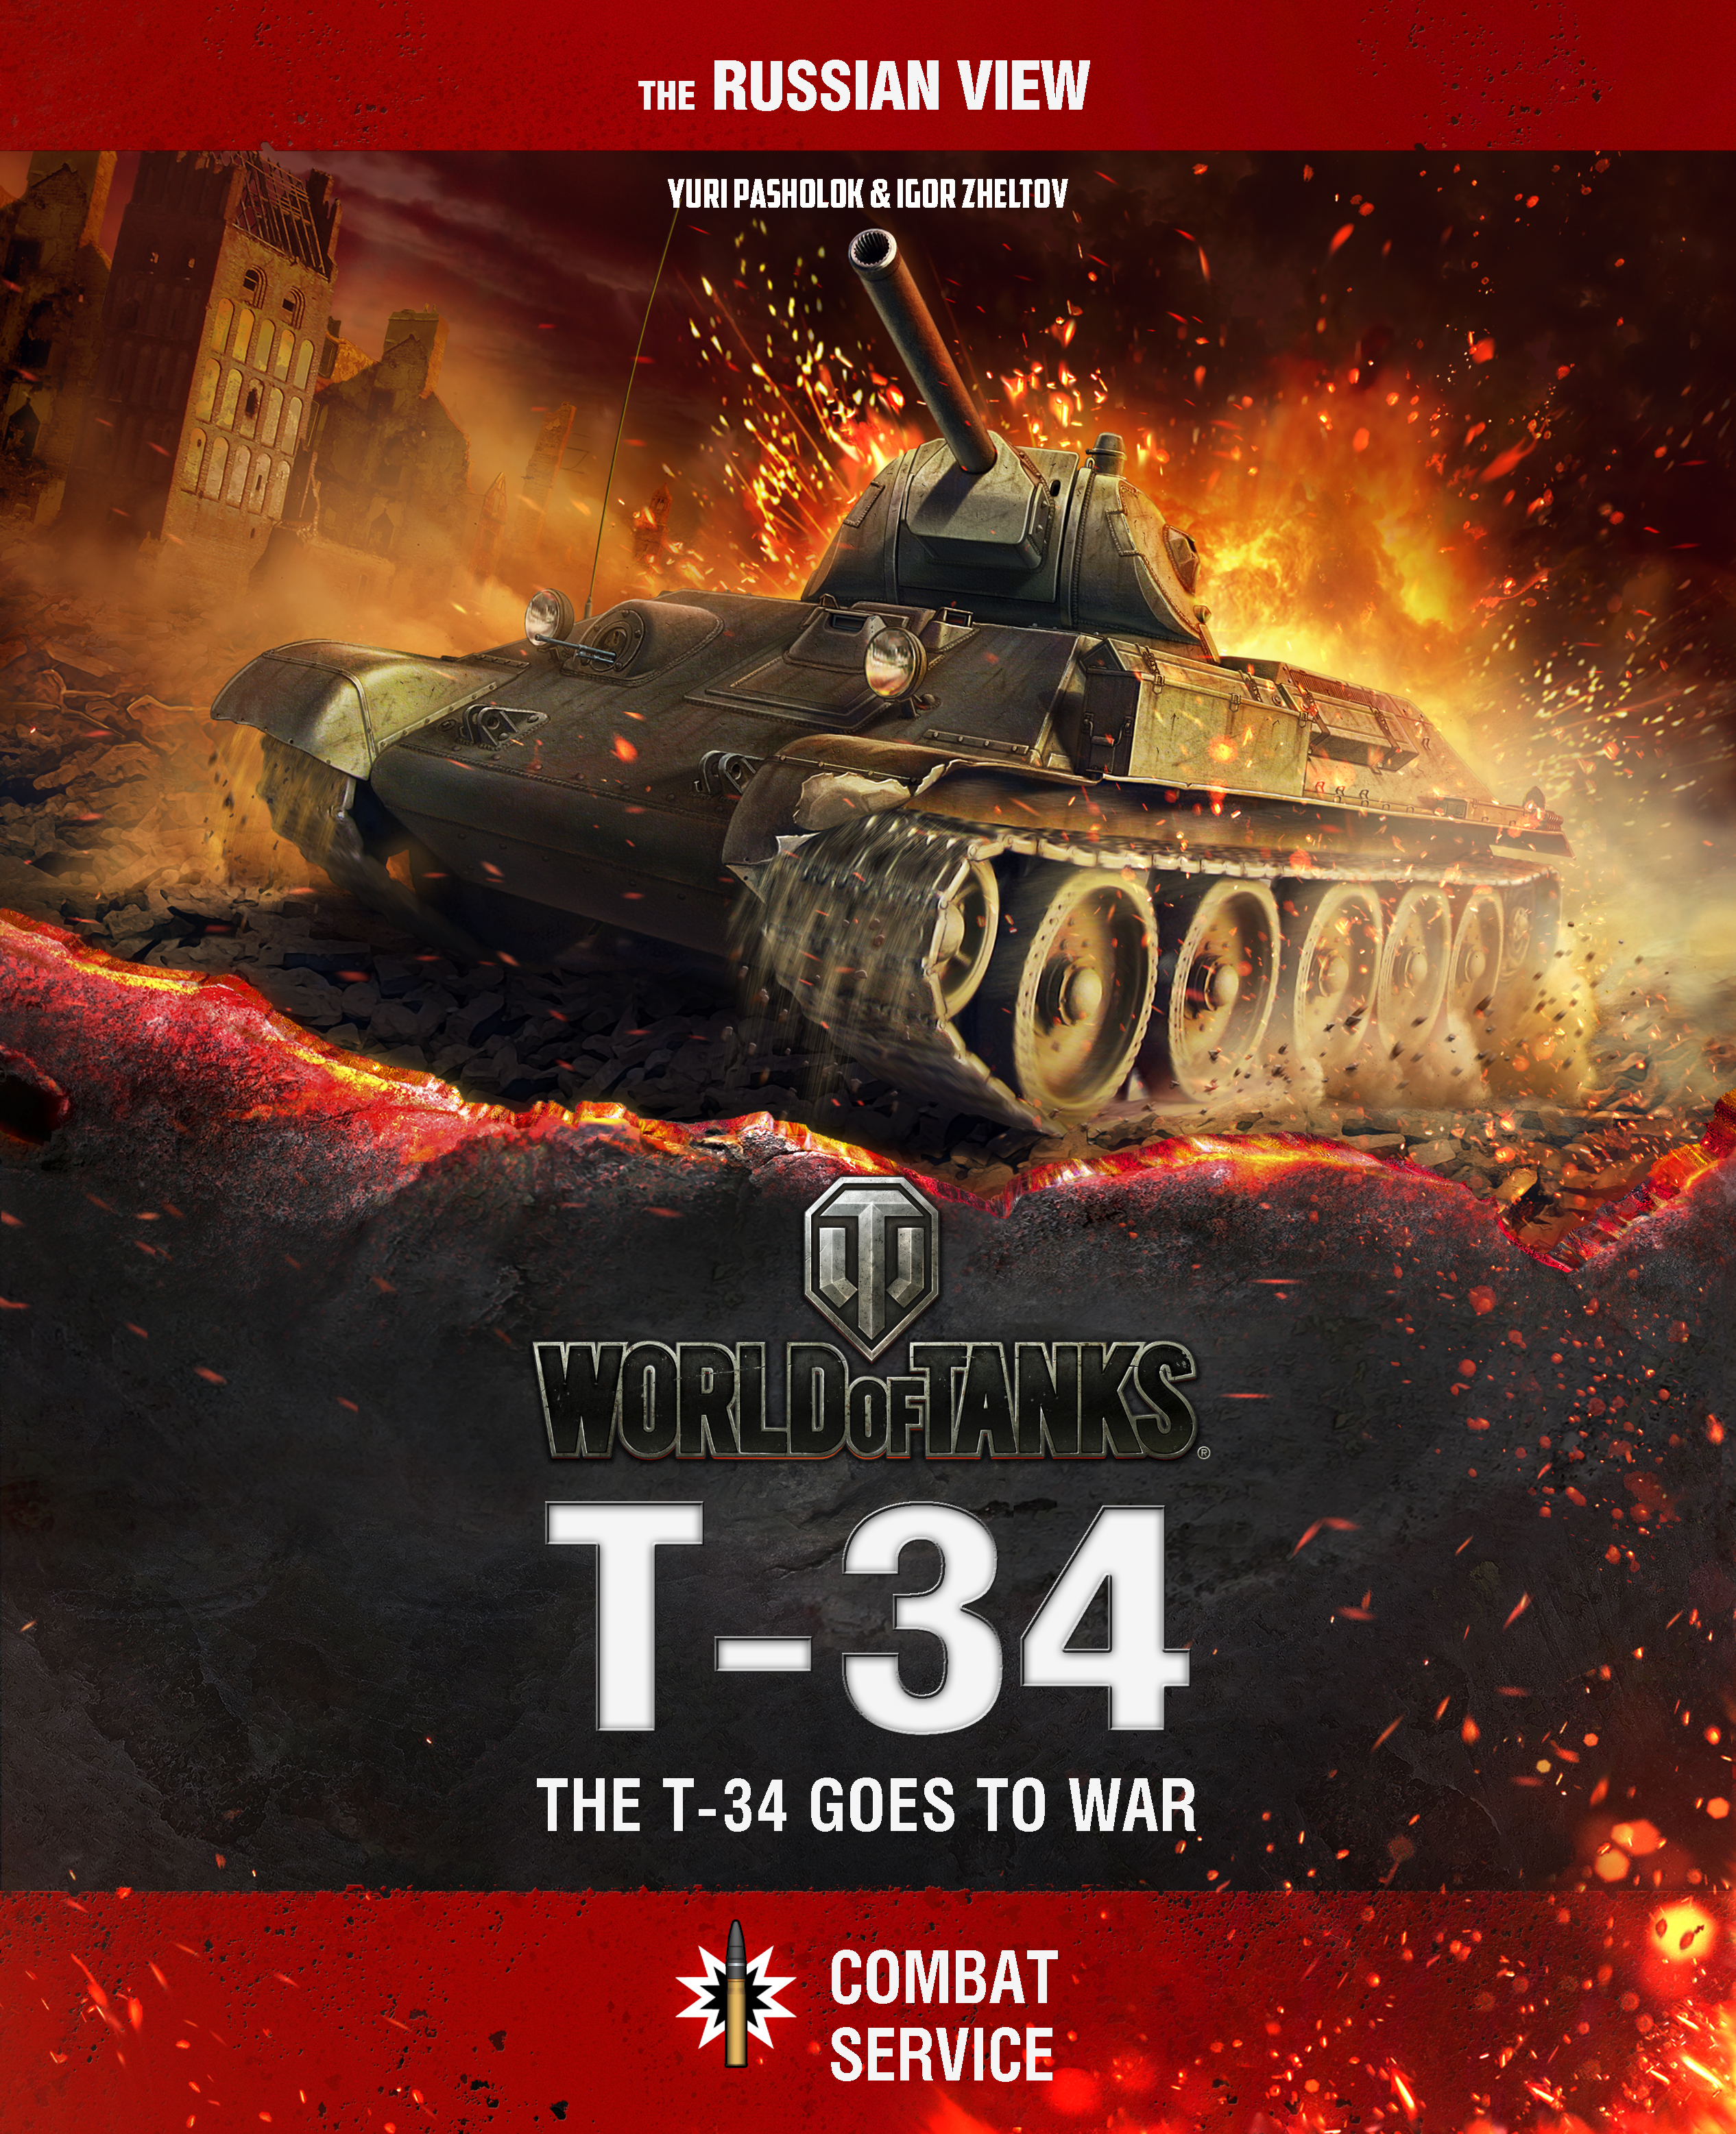 The T-34 Goes to War